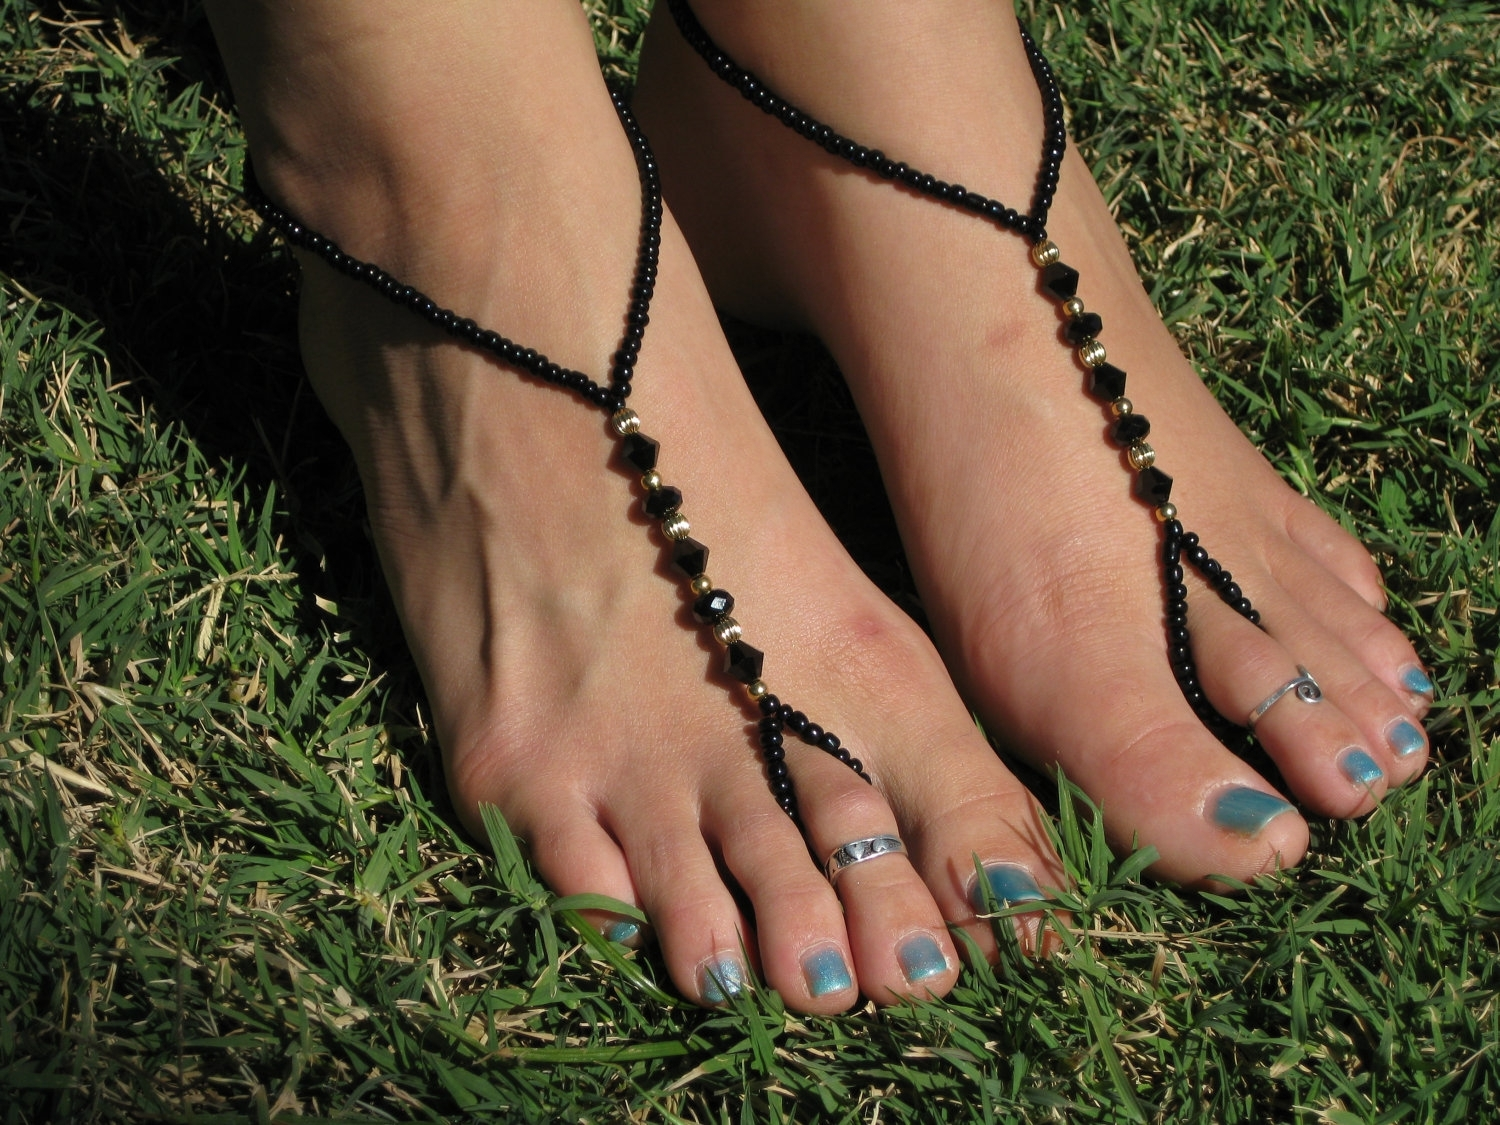 50 Toe To Ankle Bracelet, 20 Toe Ring Anklets Peru Ankle Bracelets Regarding Newest Anklets With Toe Rings (Gallery 10 of 16)